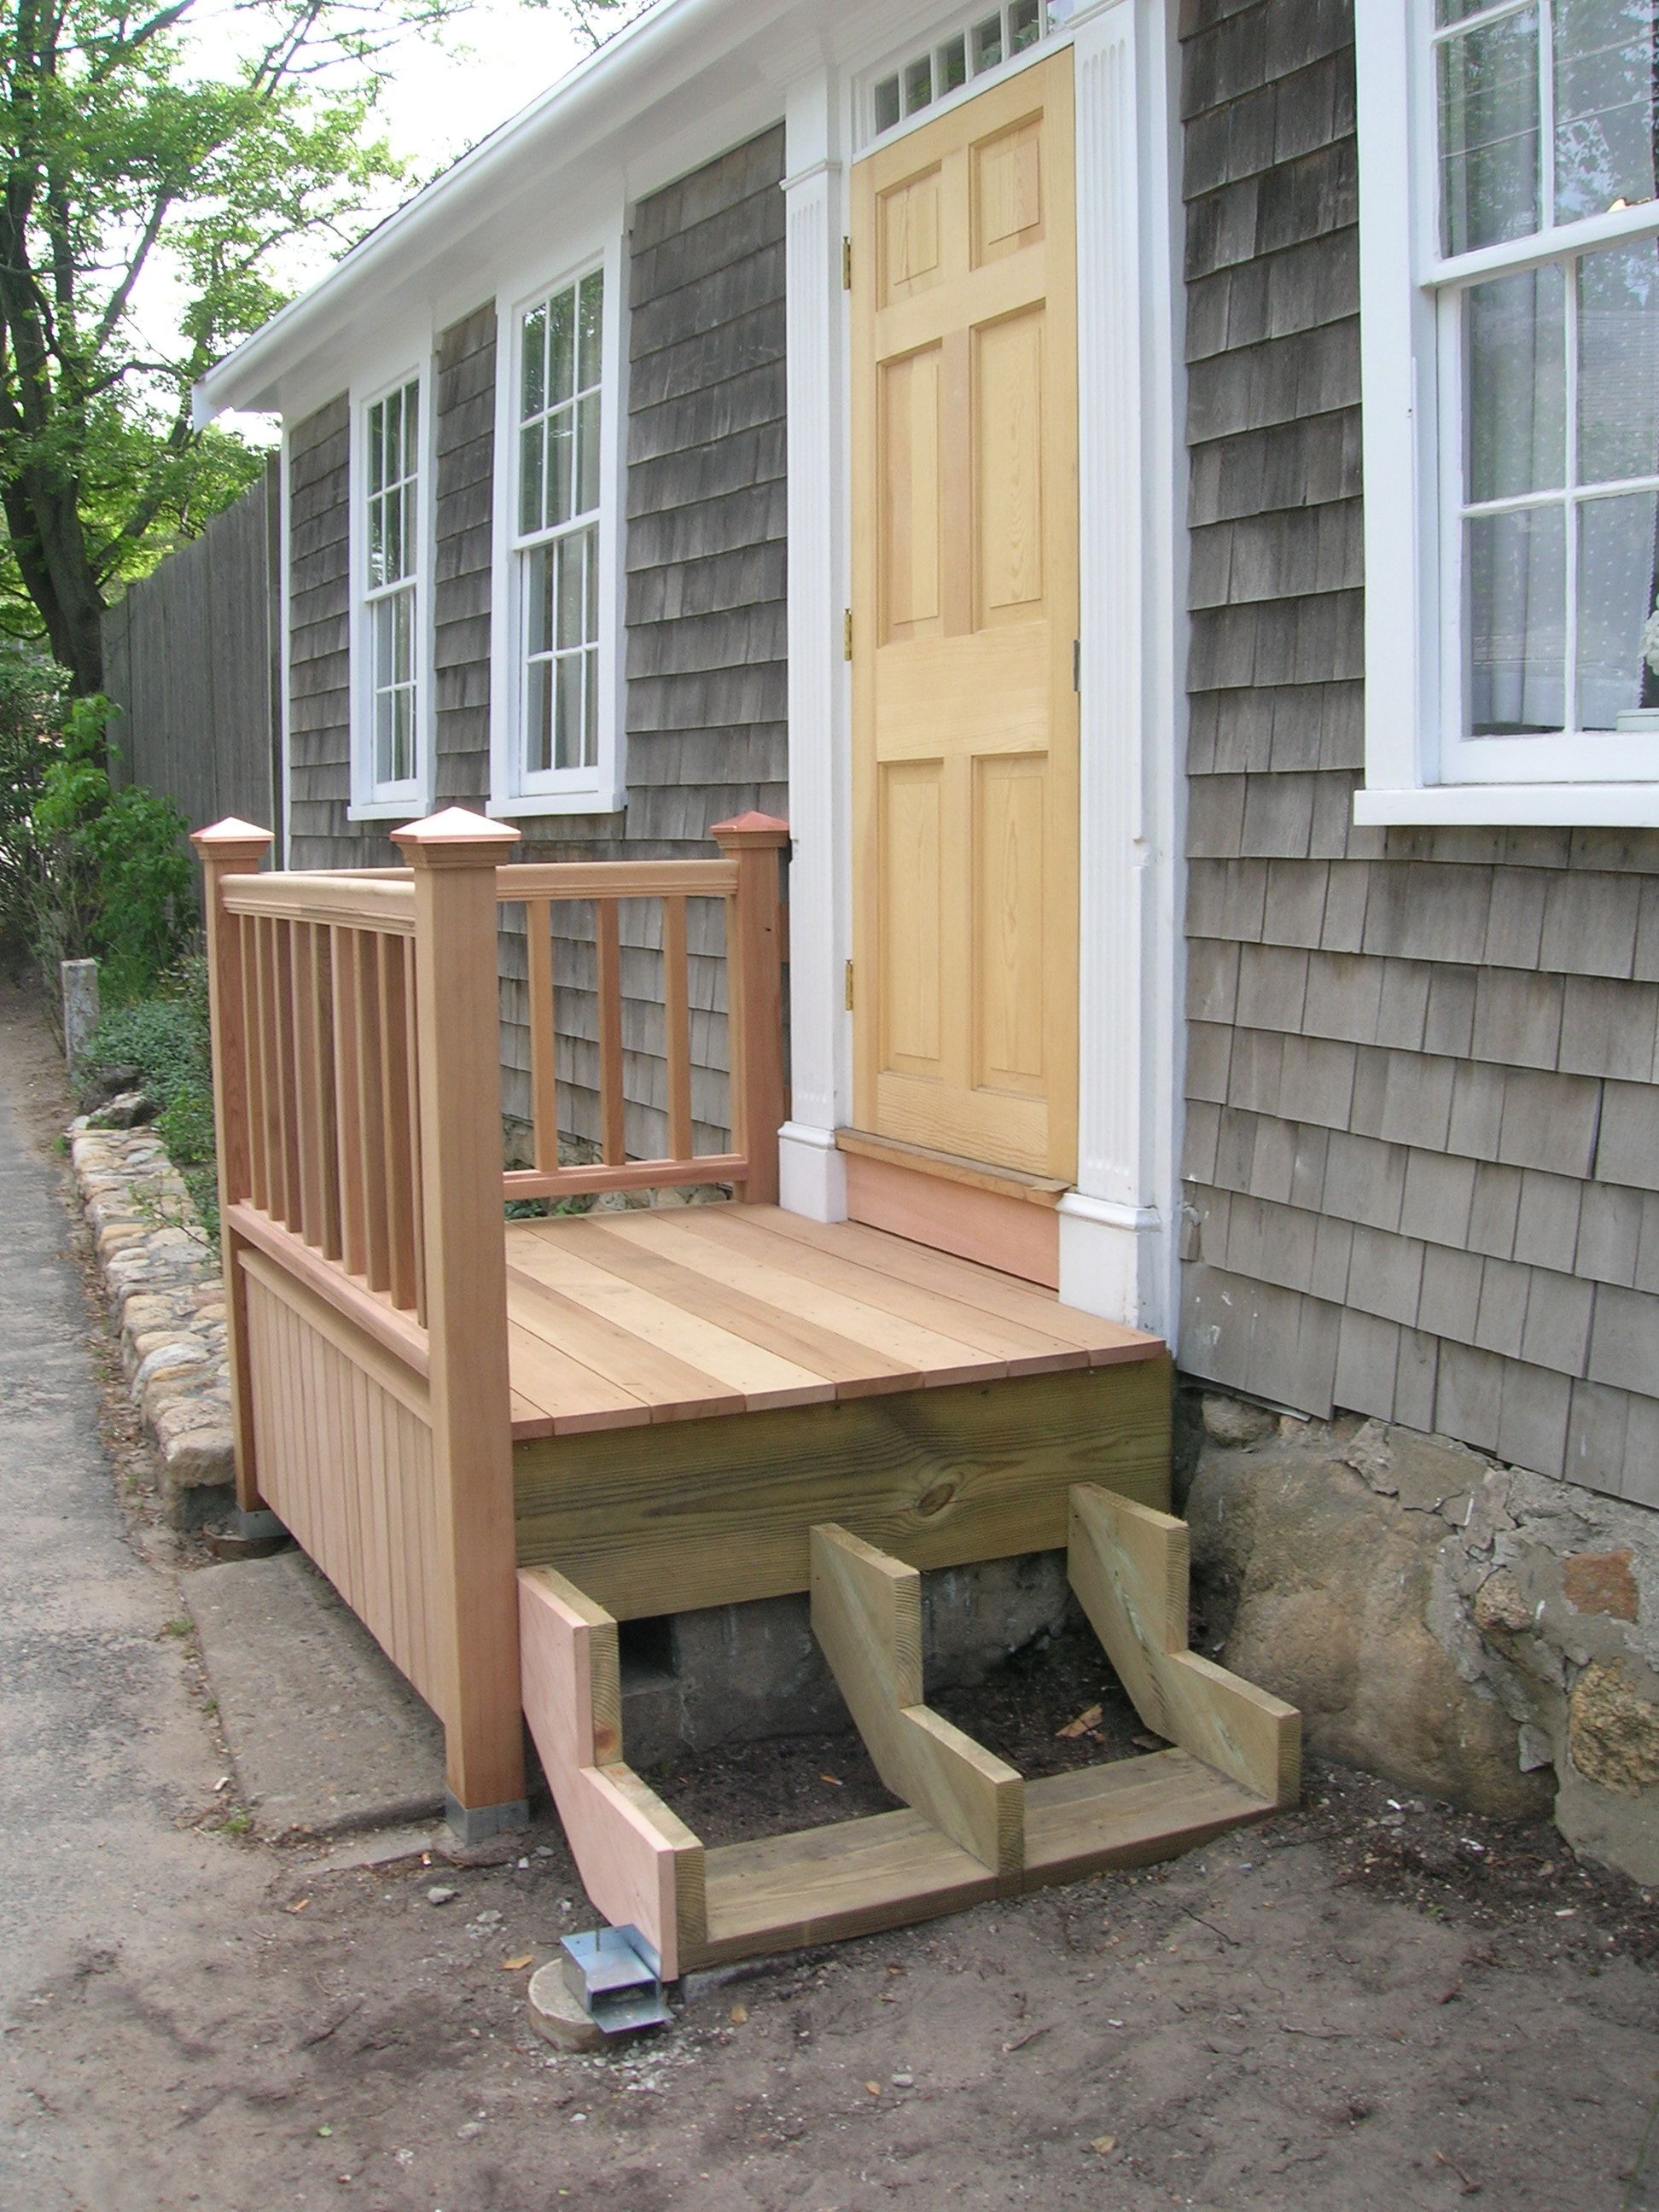 Building The New Front Steps Front Porch Steps Porch Steps | Pre Built Wooden Steps | 12 Step | Interior | Box | Oak | Premade